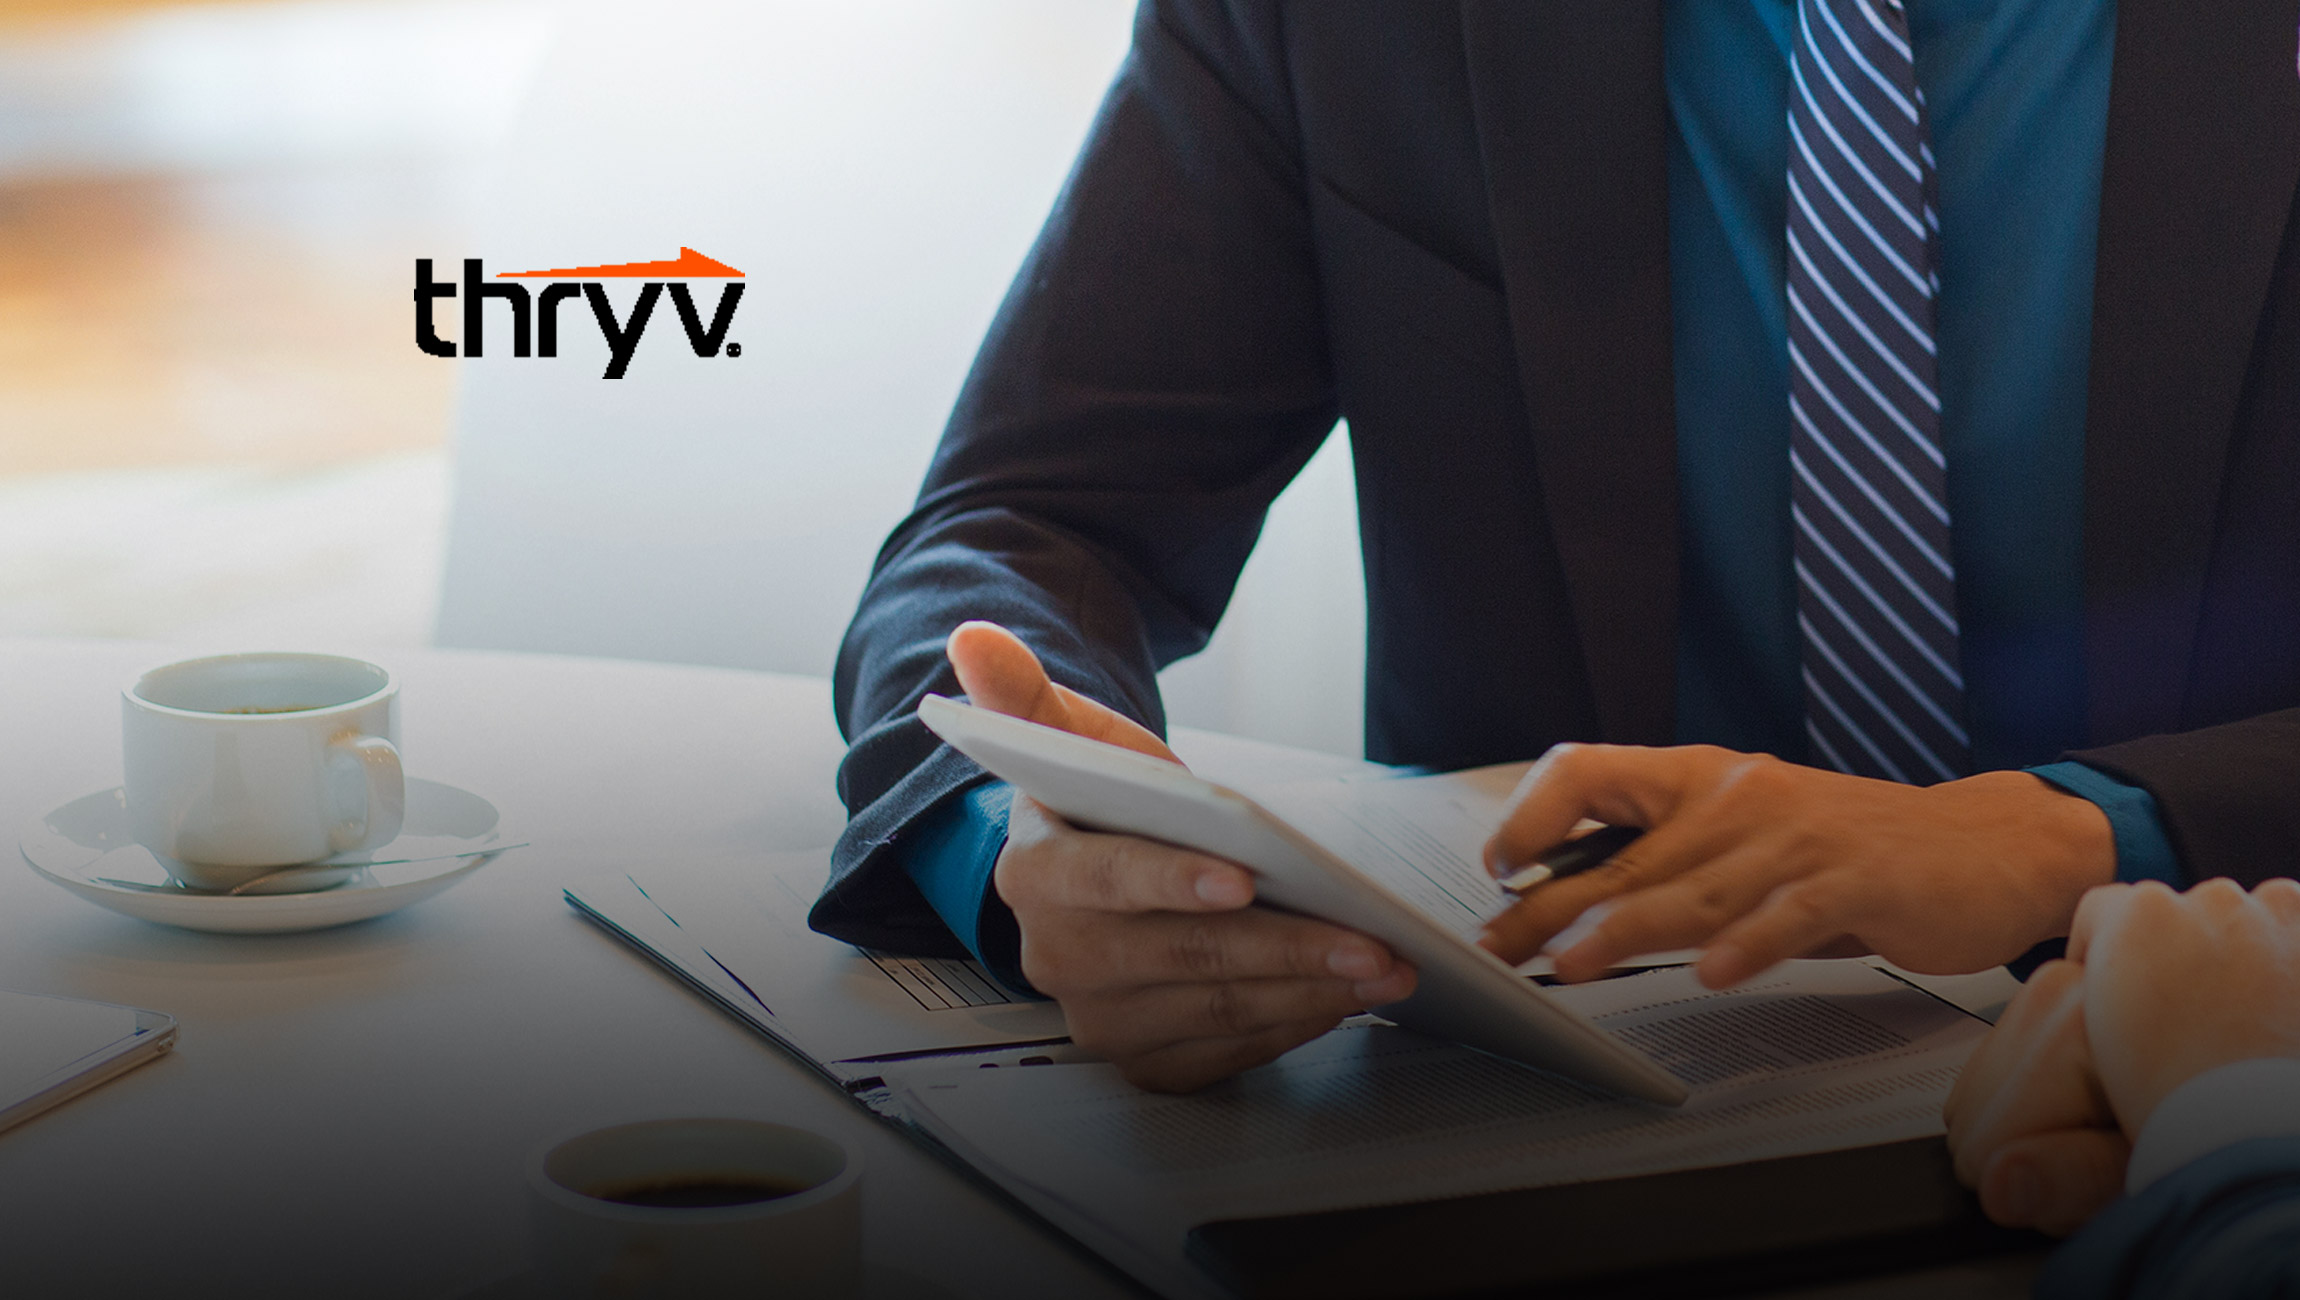 Thryv Online Experience Report: Small Businesses' Reputation Suffered During COVID-19